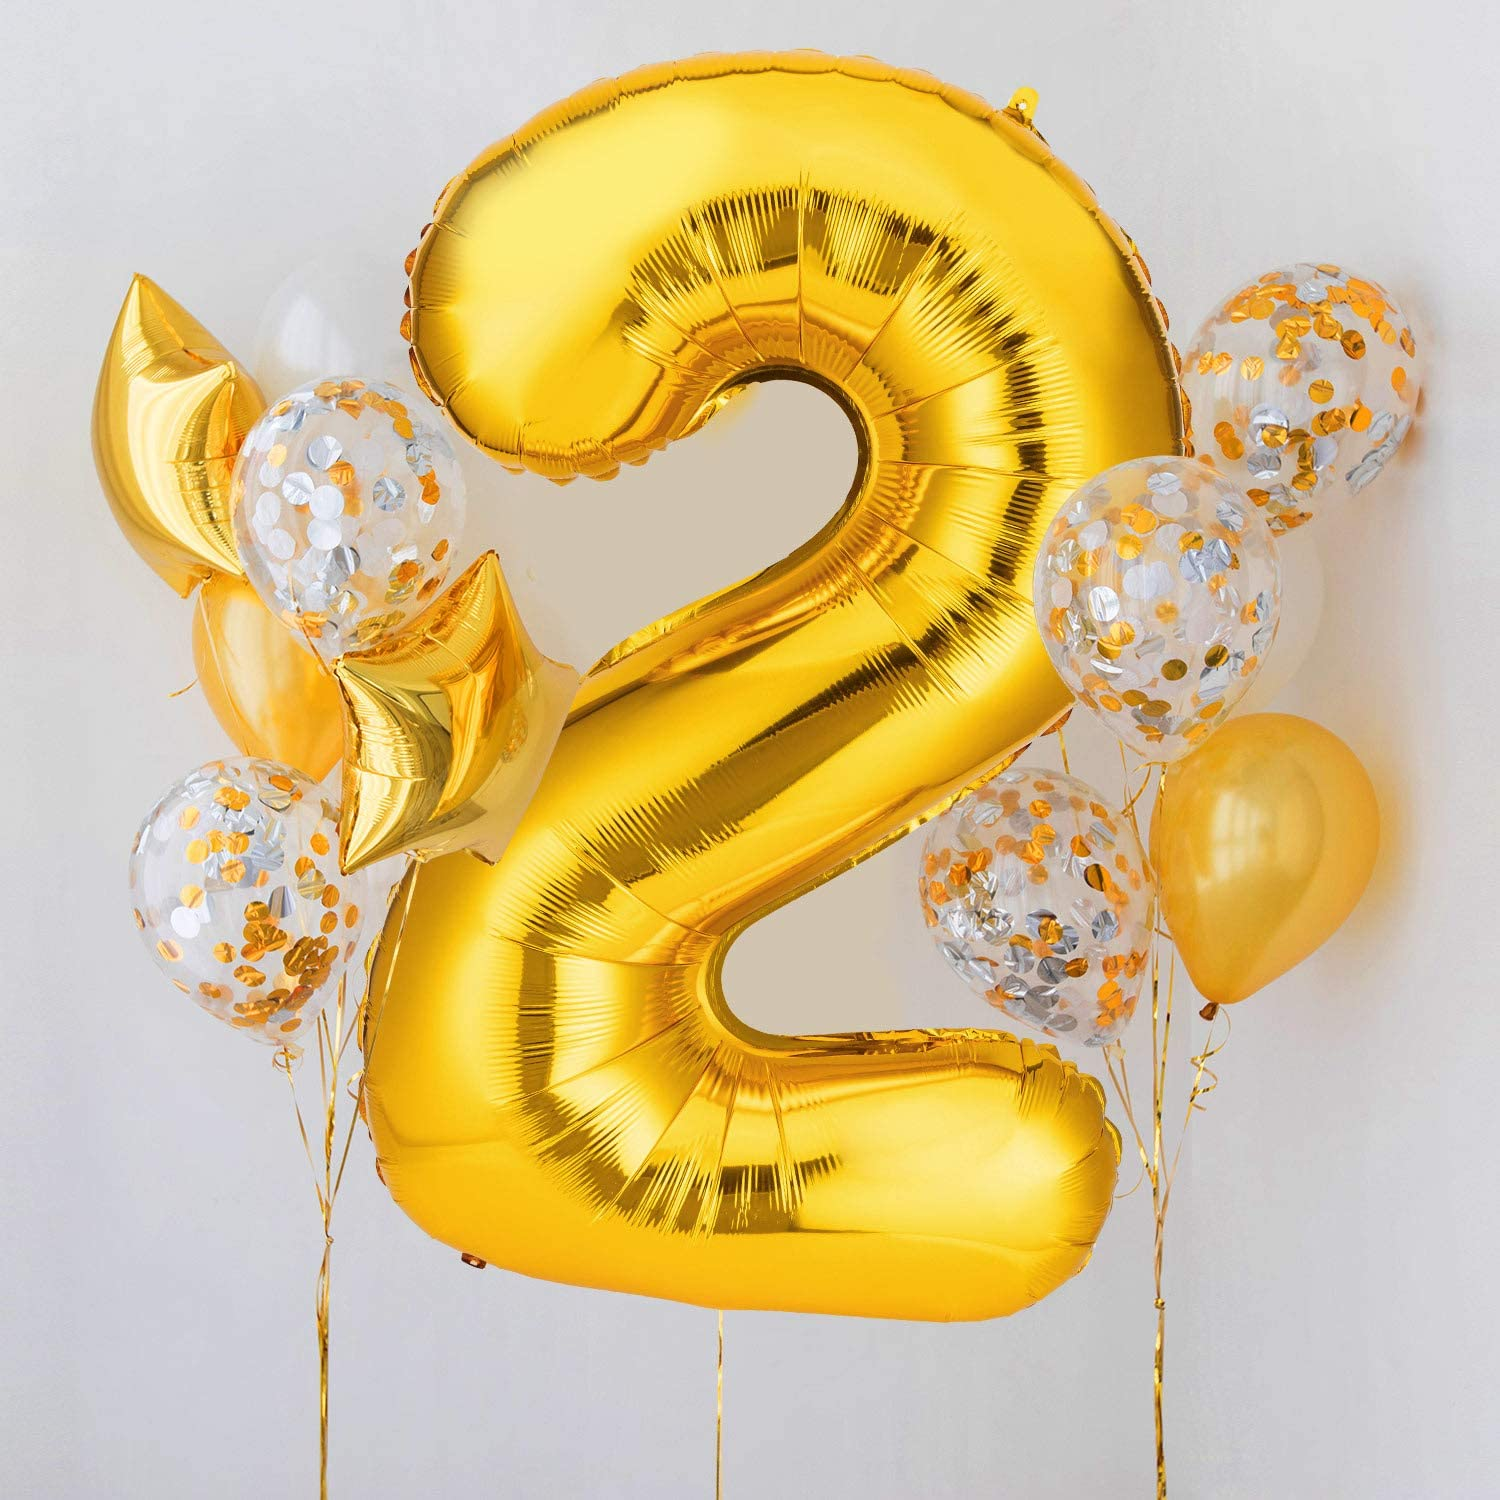 Digital Balloons for Birthday Party Decorations Supplies 40 Inch Gold Number 5 Balloons